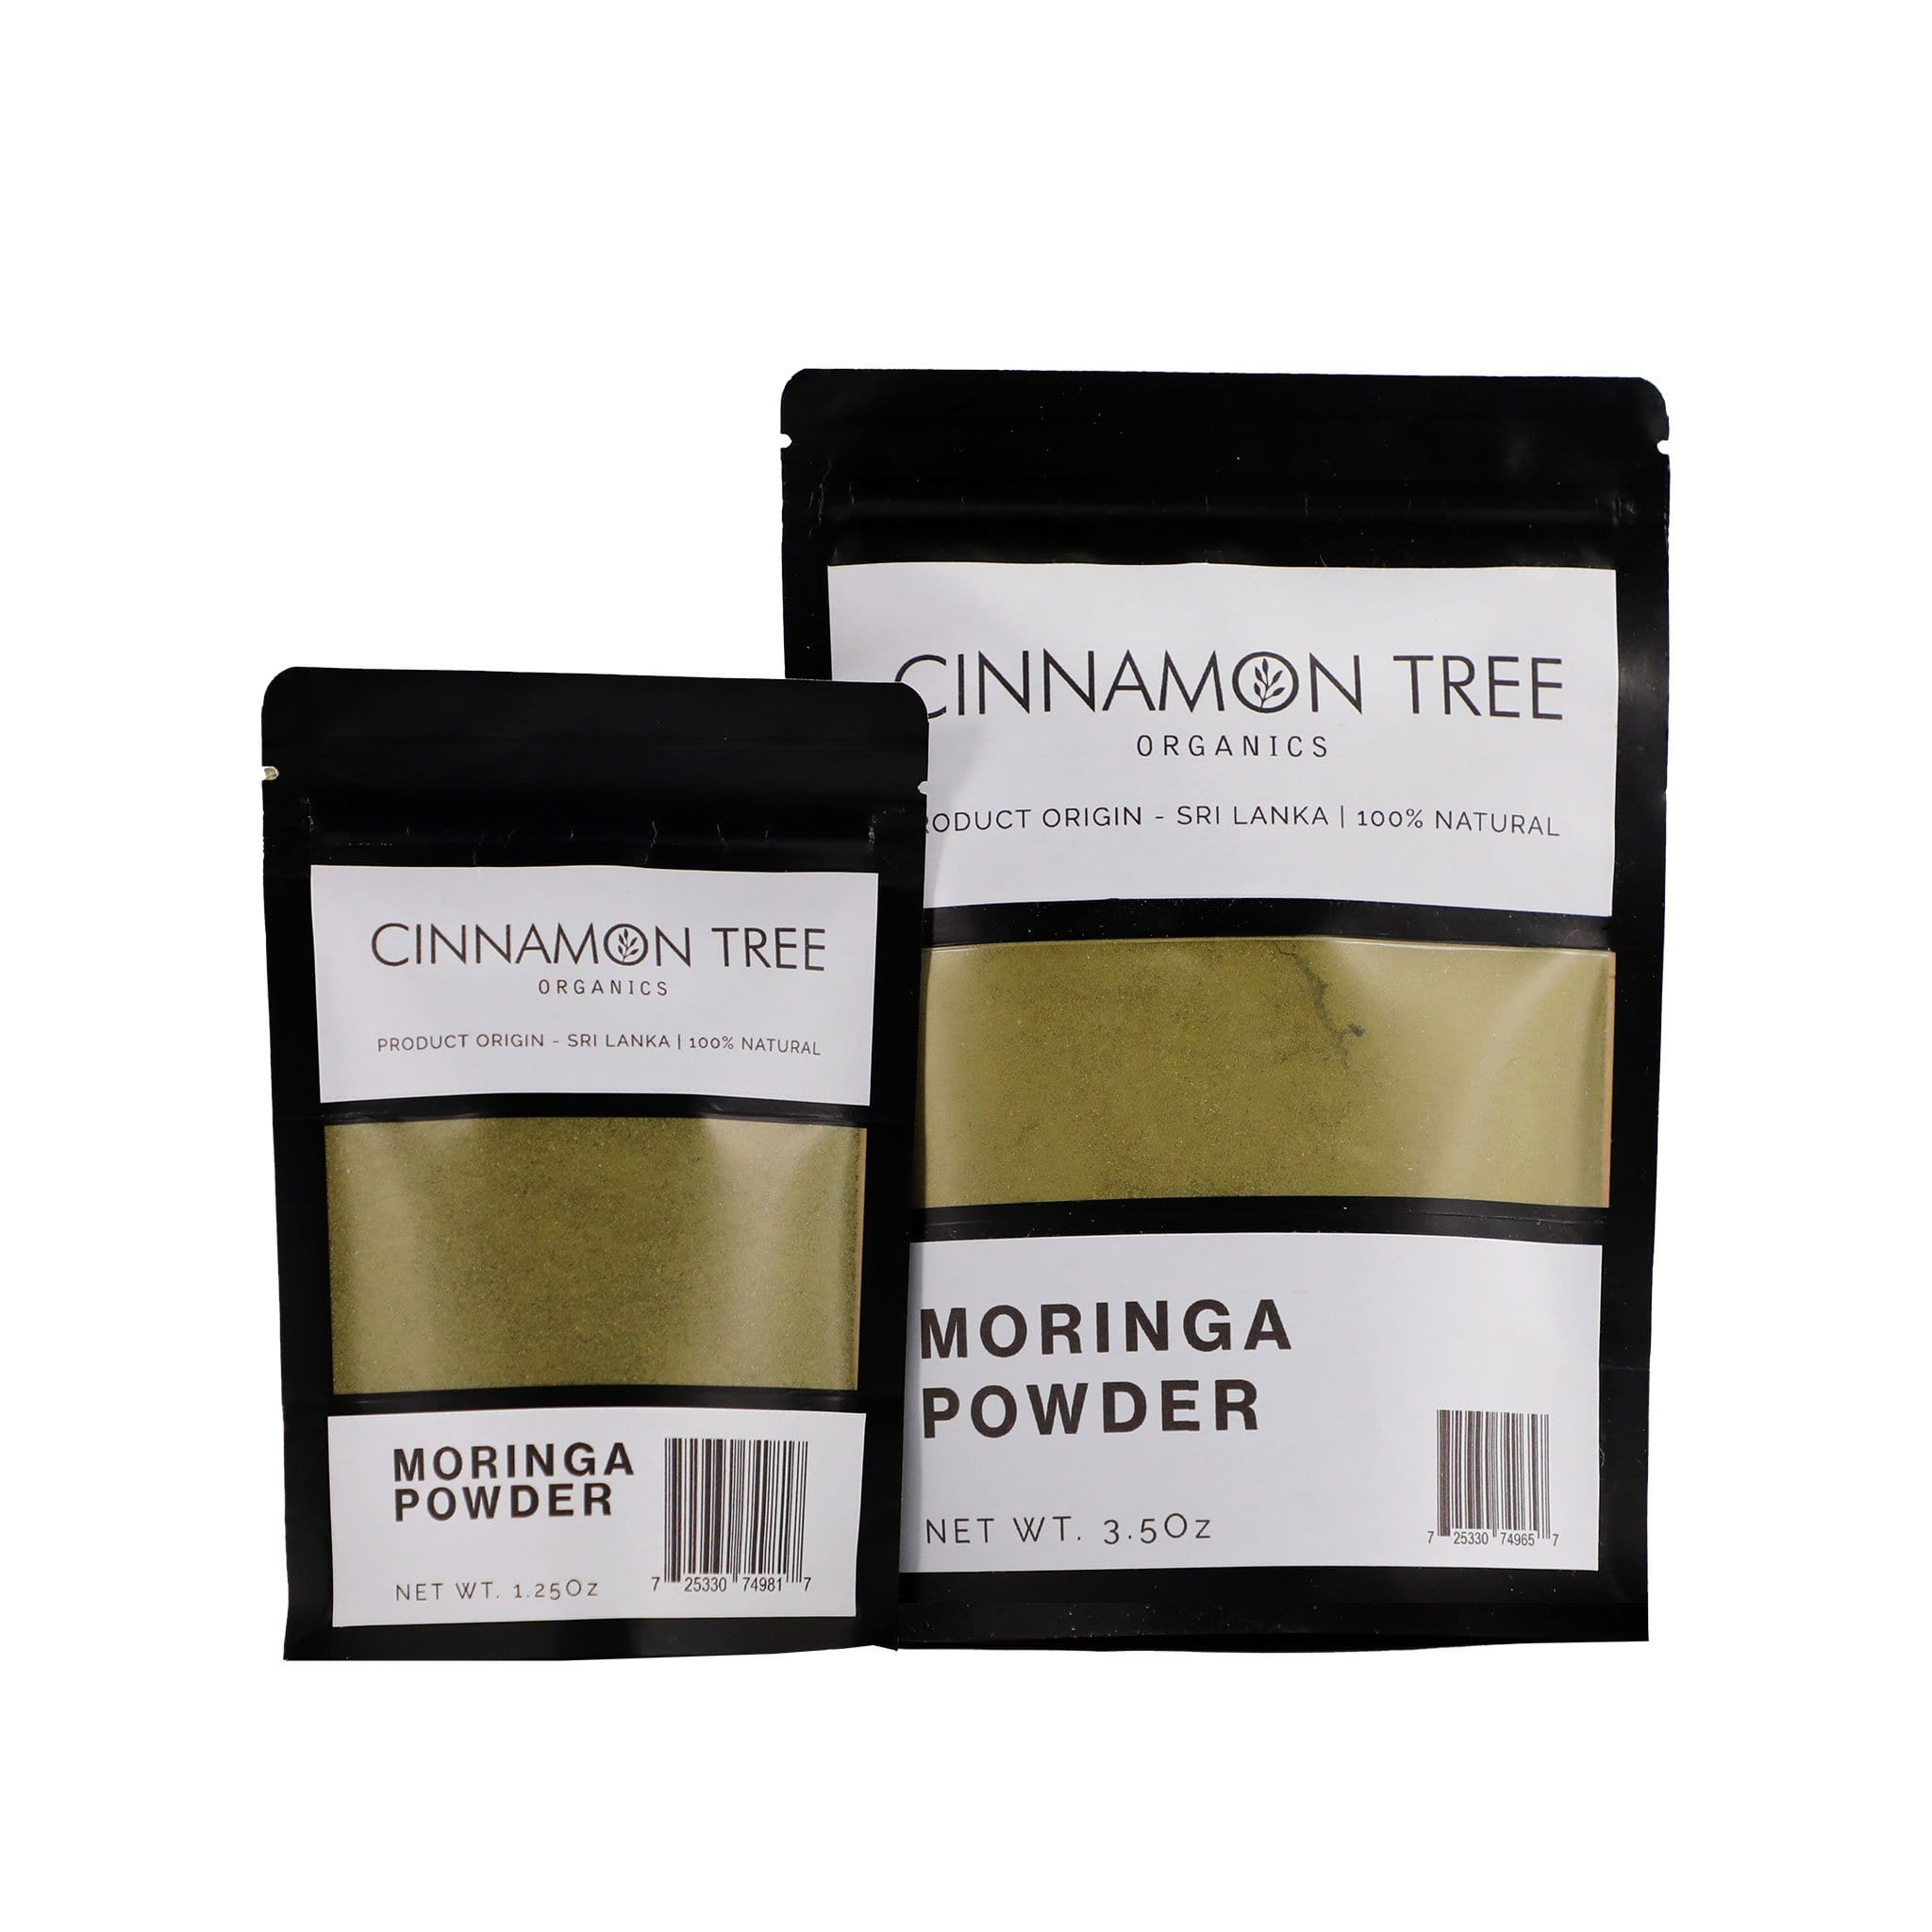 Cinnamon Tree Organics organically grown moringa powder packs